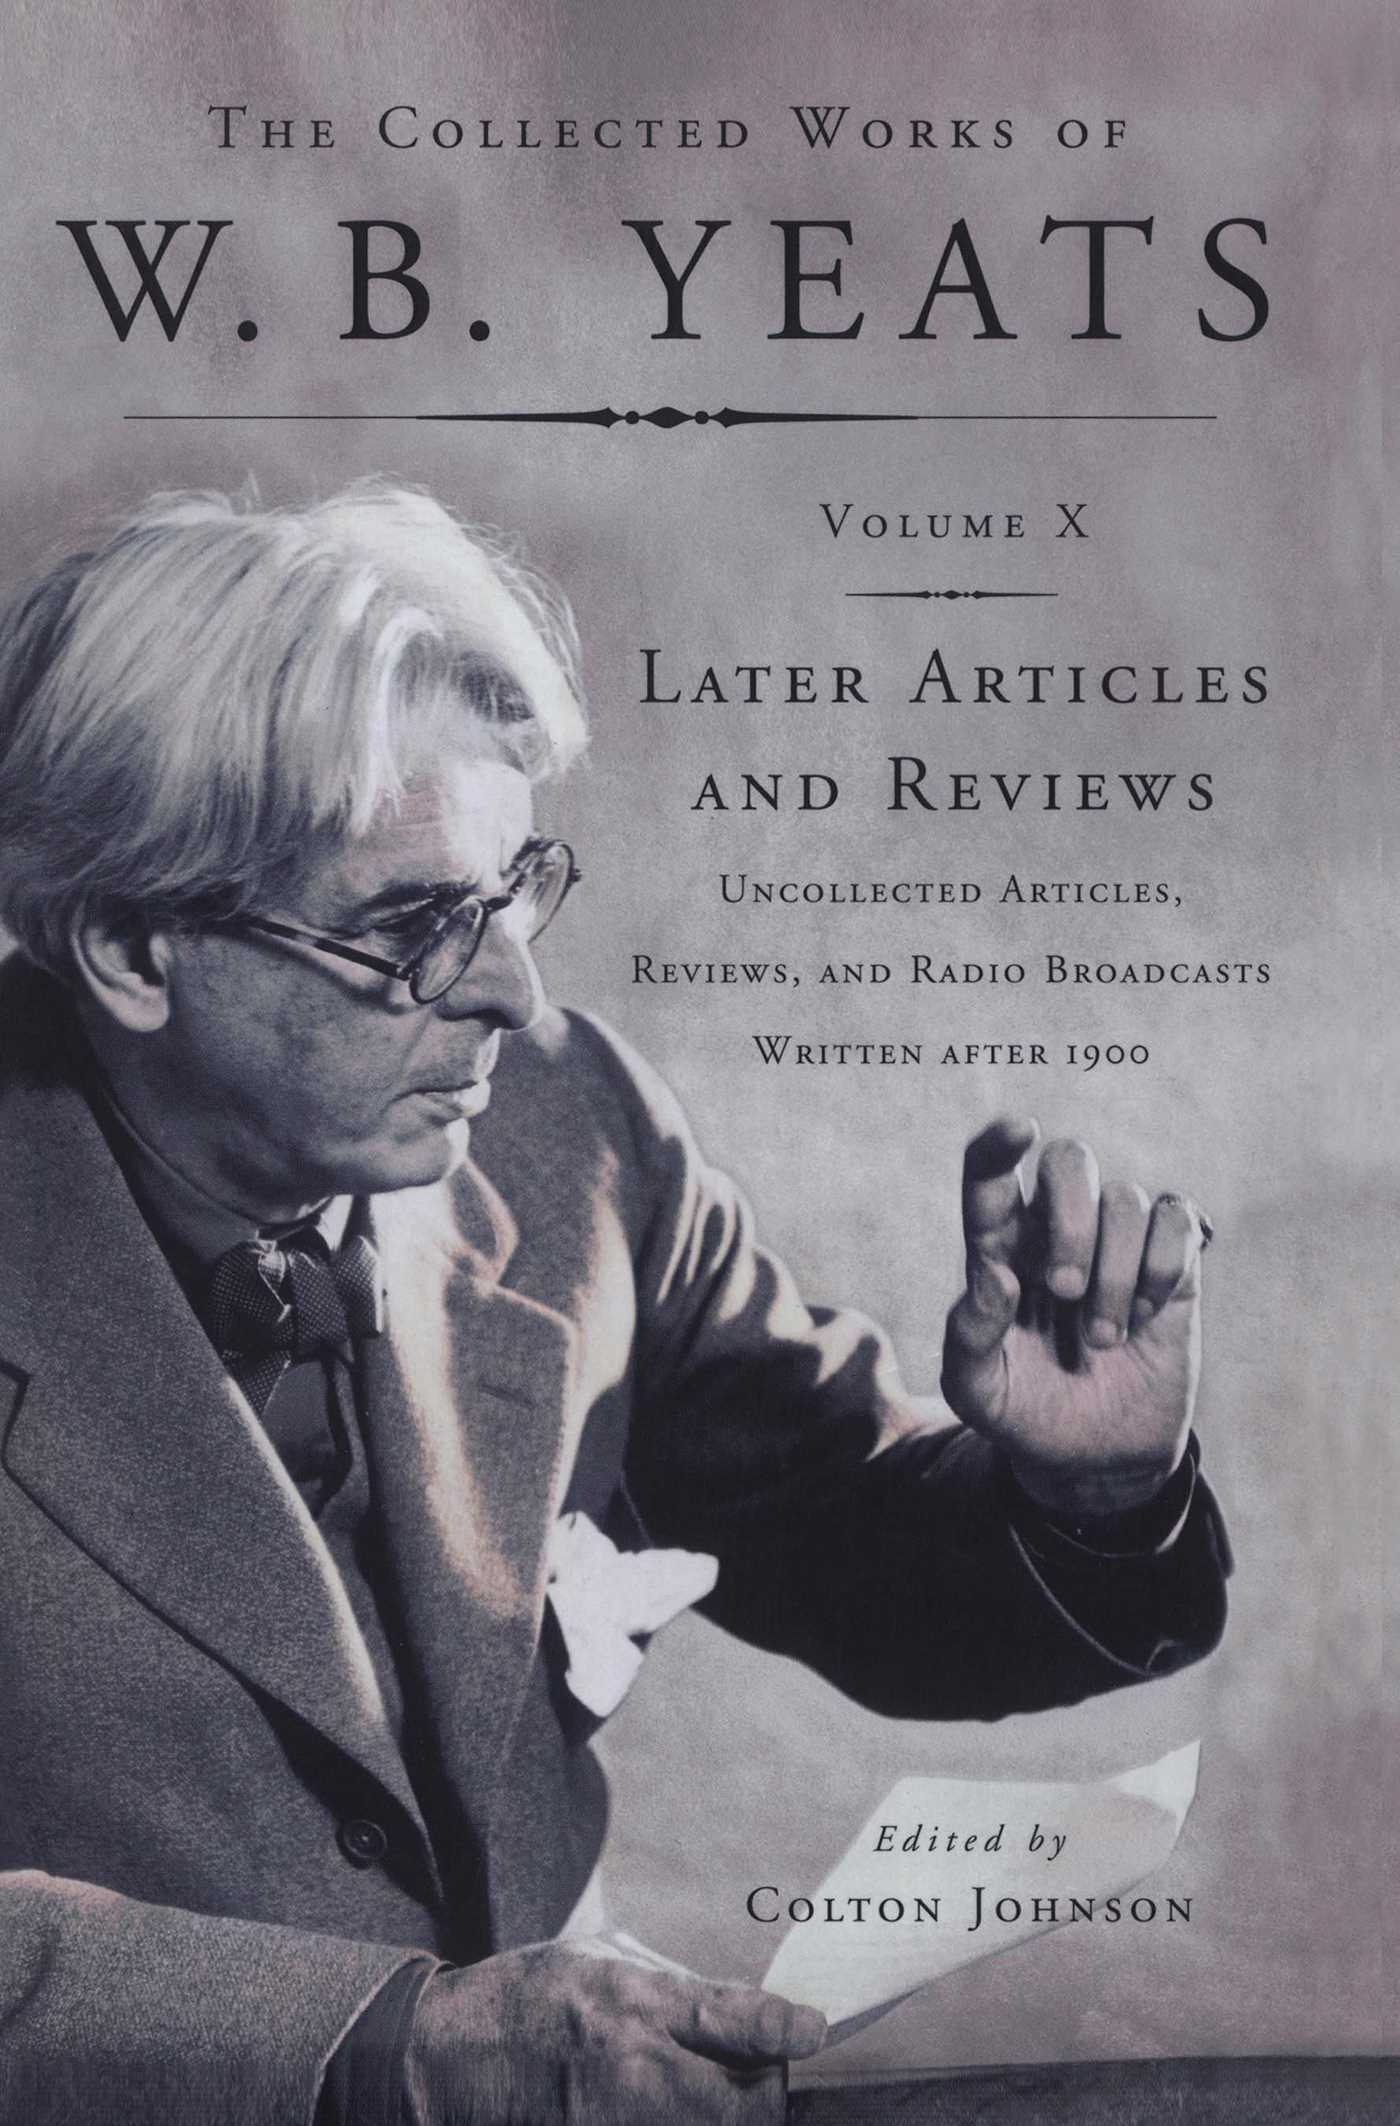 The-collected-works-of-w-b-yeats-vol-x-later-article-9781451603026_hr